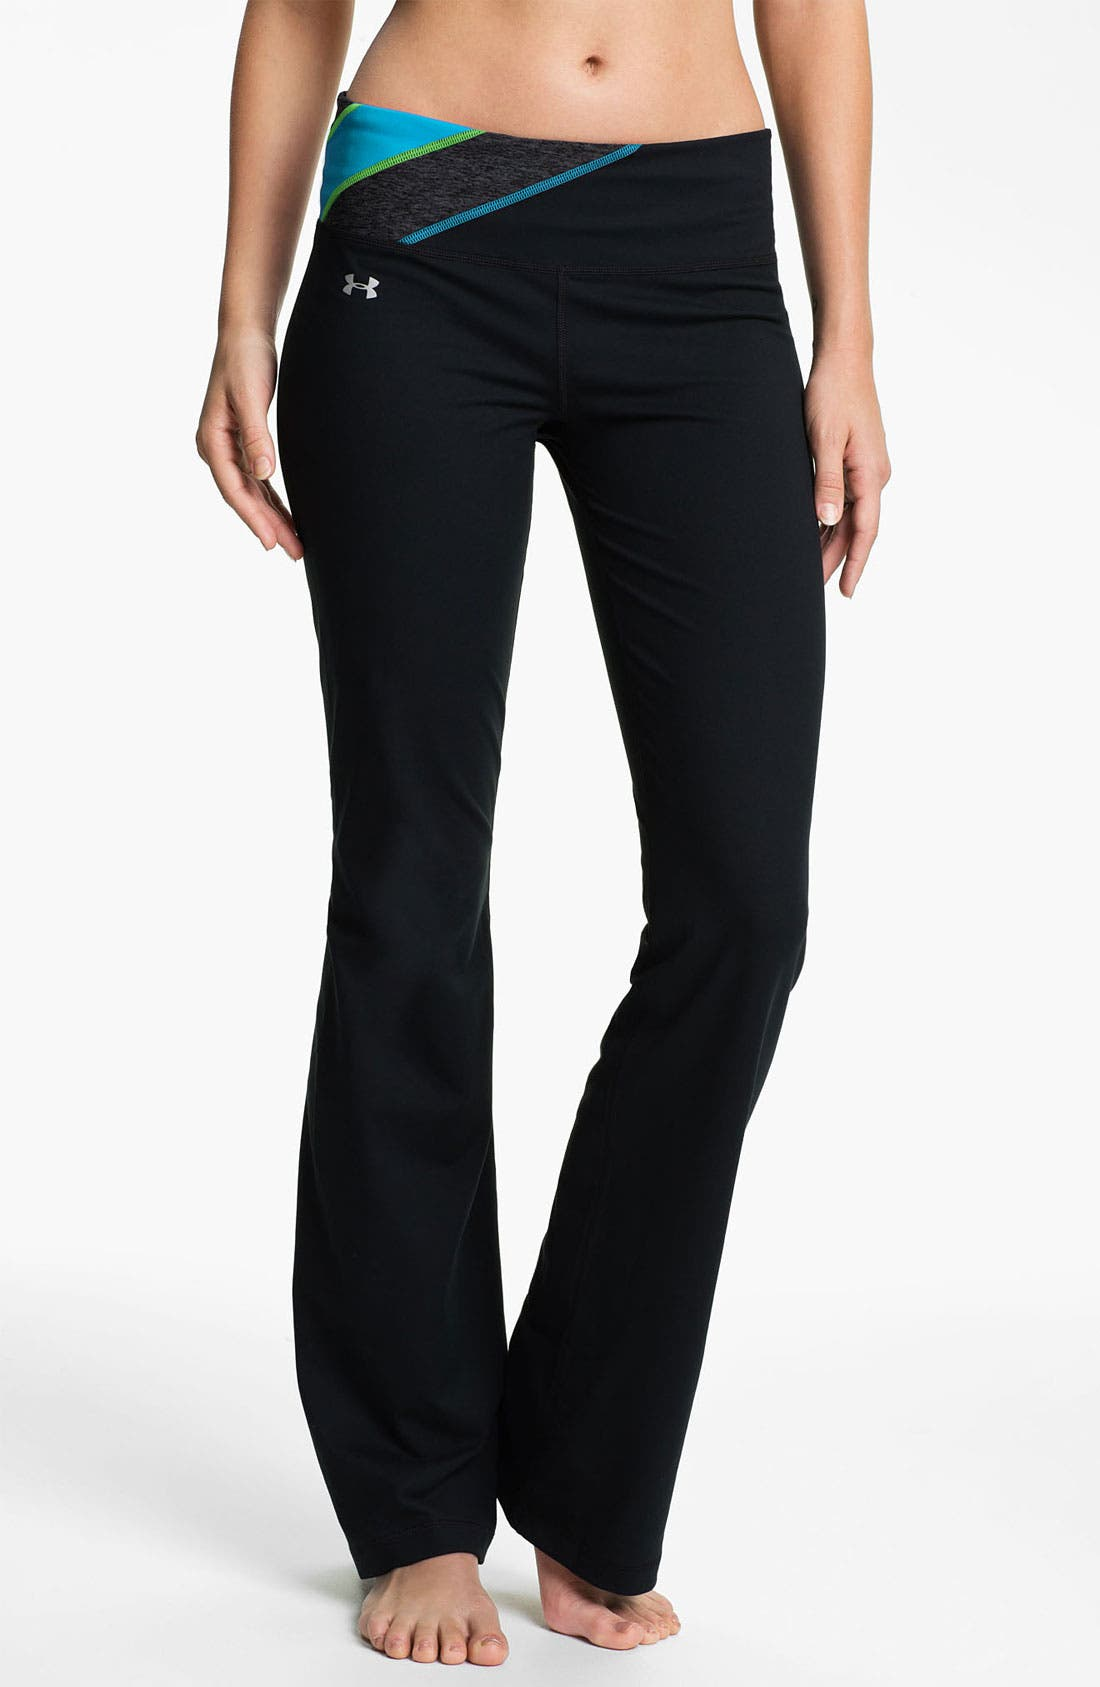 Alternate Image 1 Selected - Under Armour 'Perfect Shape' Pants